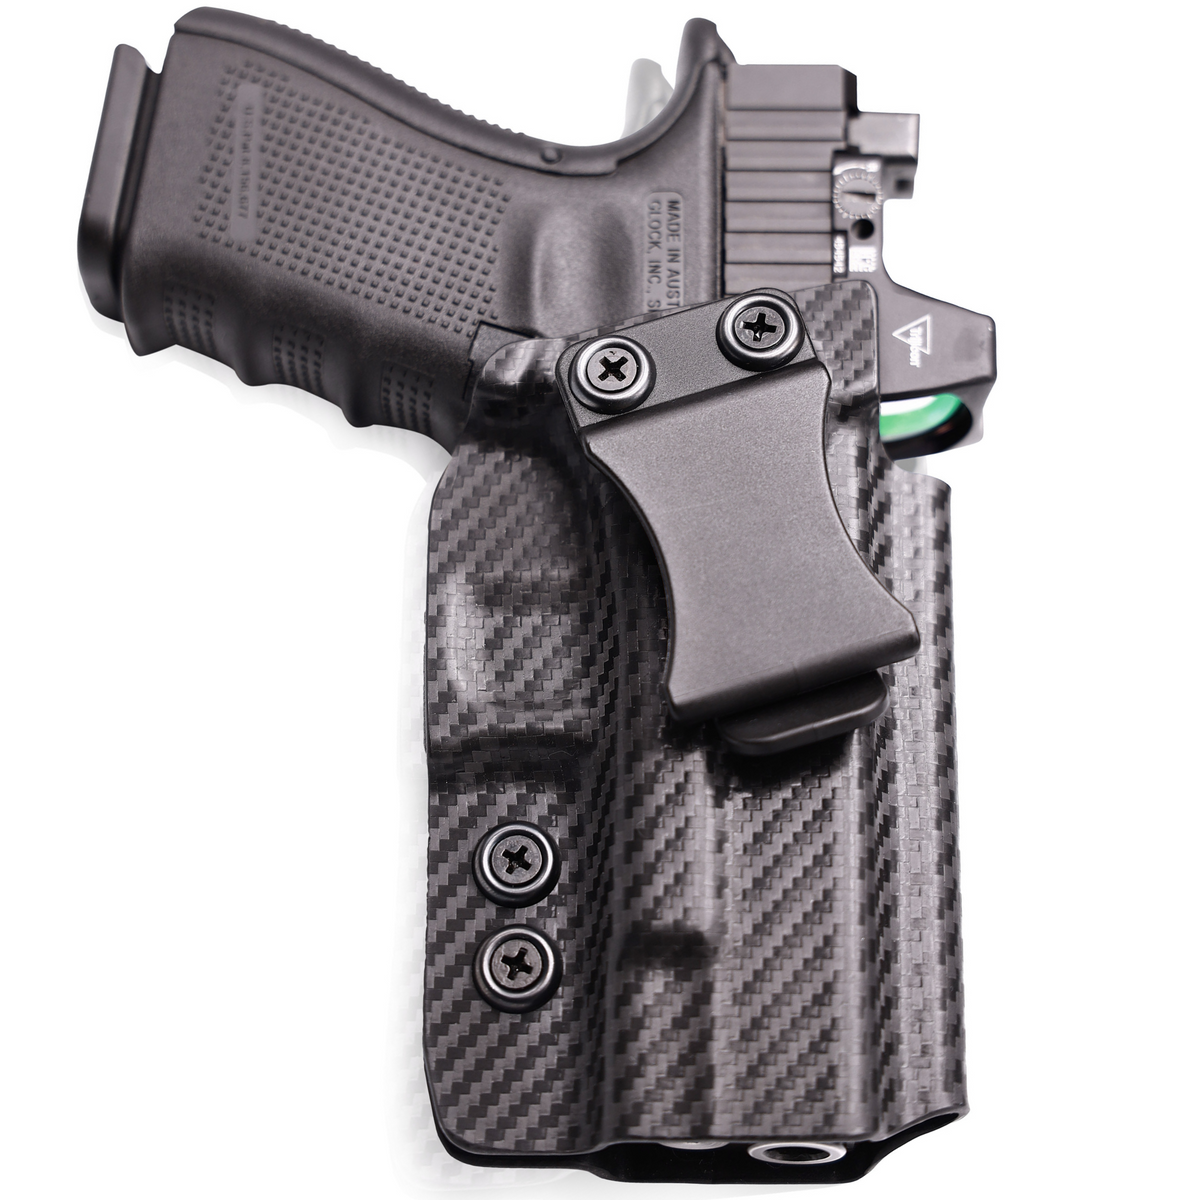 Glock IWB Optics Ready - Concealed Carry Holsters